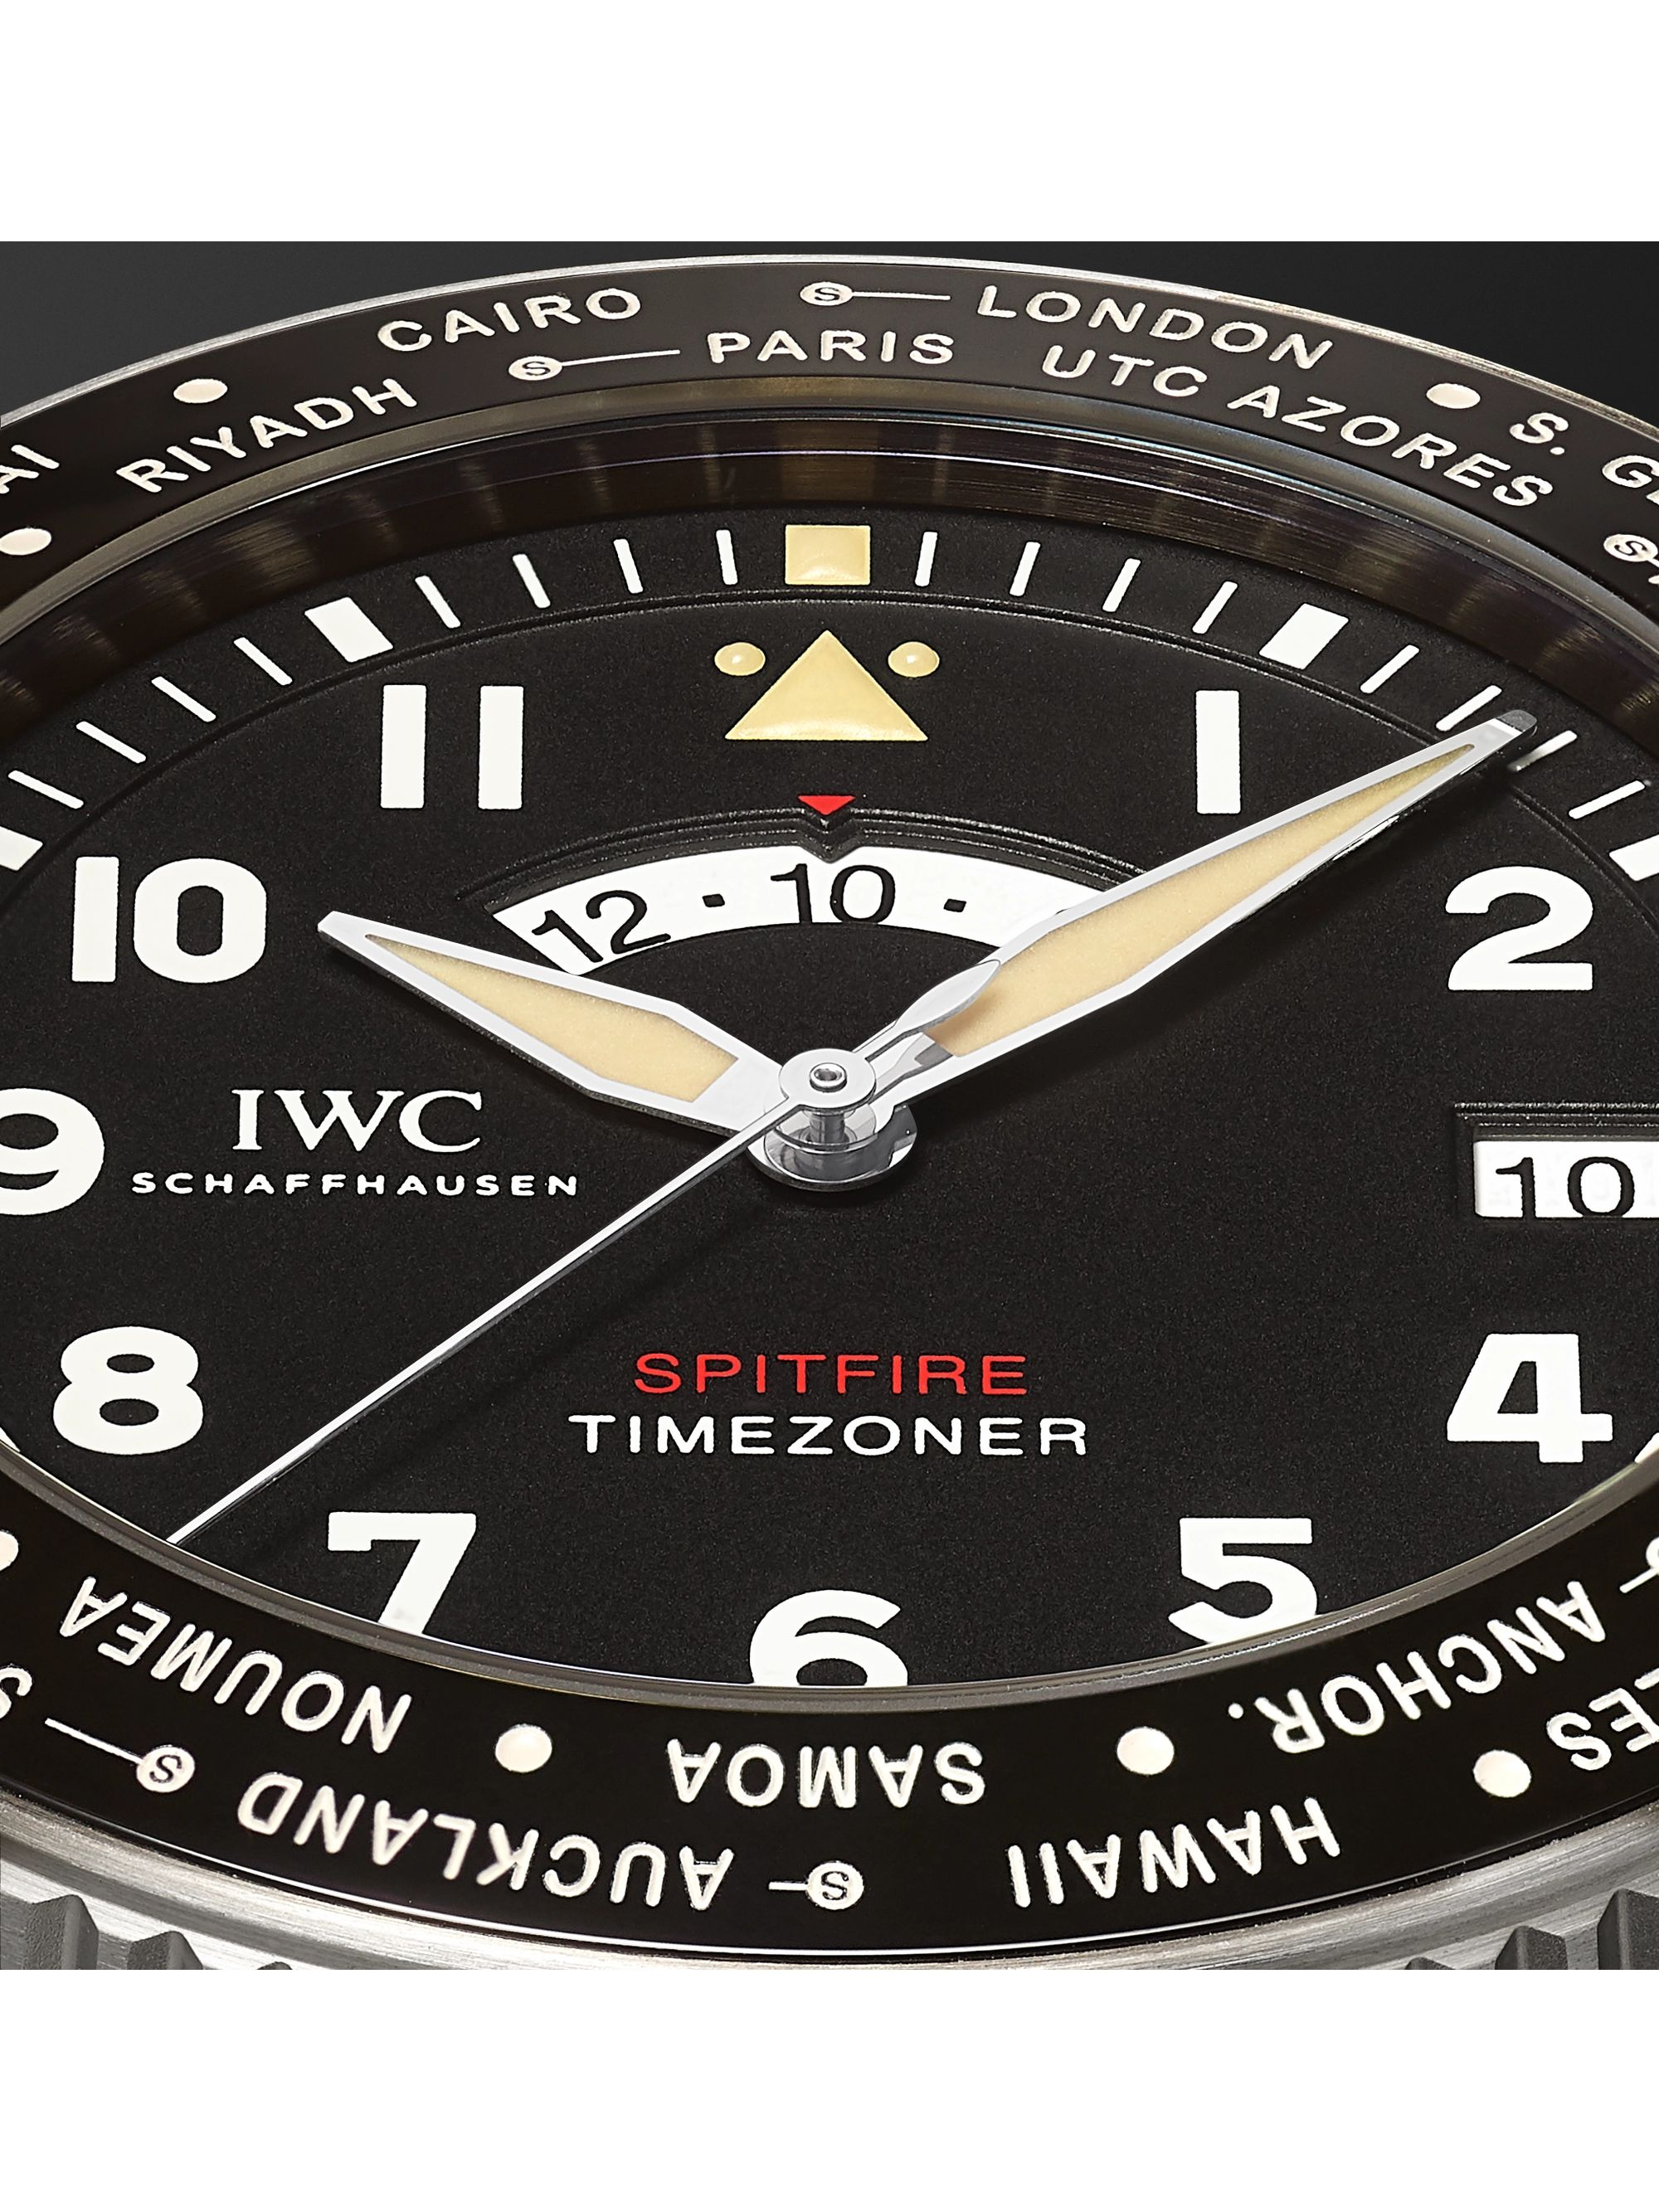 IWC SCHAFFHAUSEN Pilot's Timezoner Spitfire The Longest Flight Automatic 46mm Stainless Steel and Leather-Backed Webbing Watch, Ref. No. IW395501